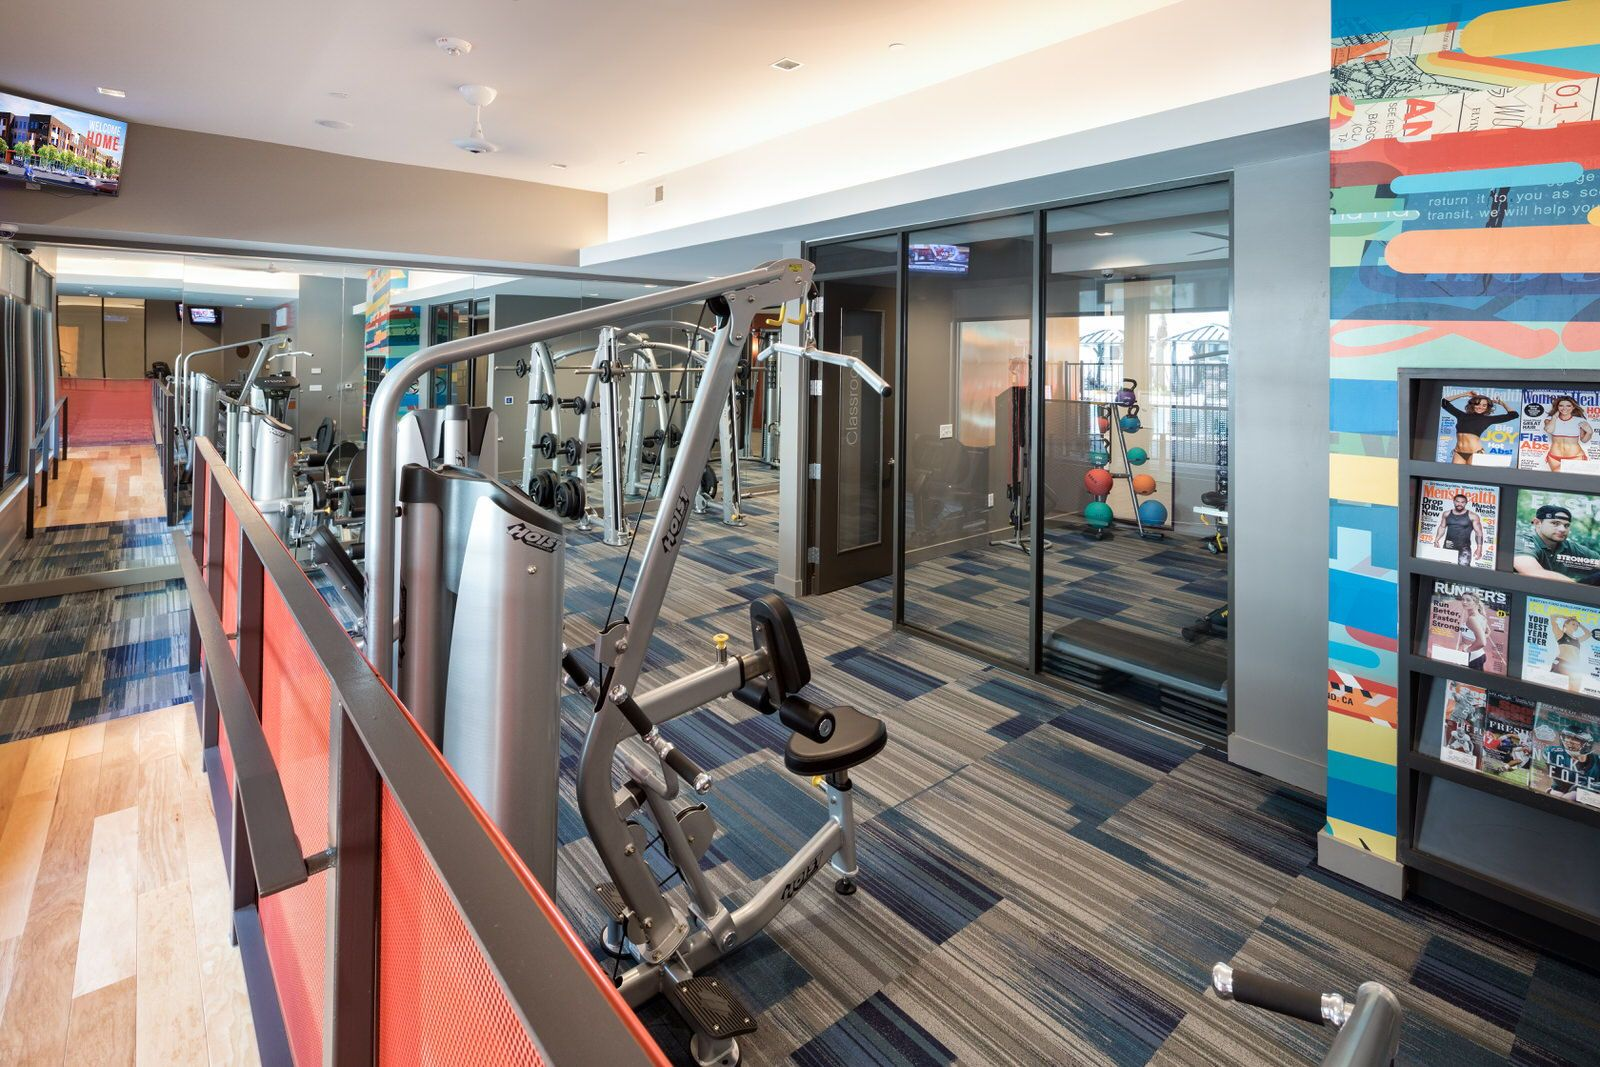 Pick the workout of your choice in the onsite fitness